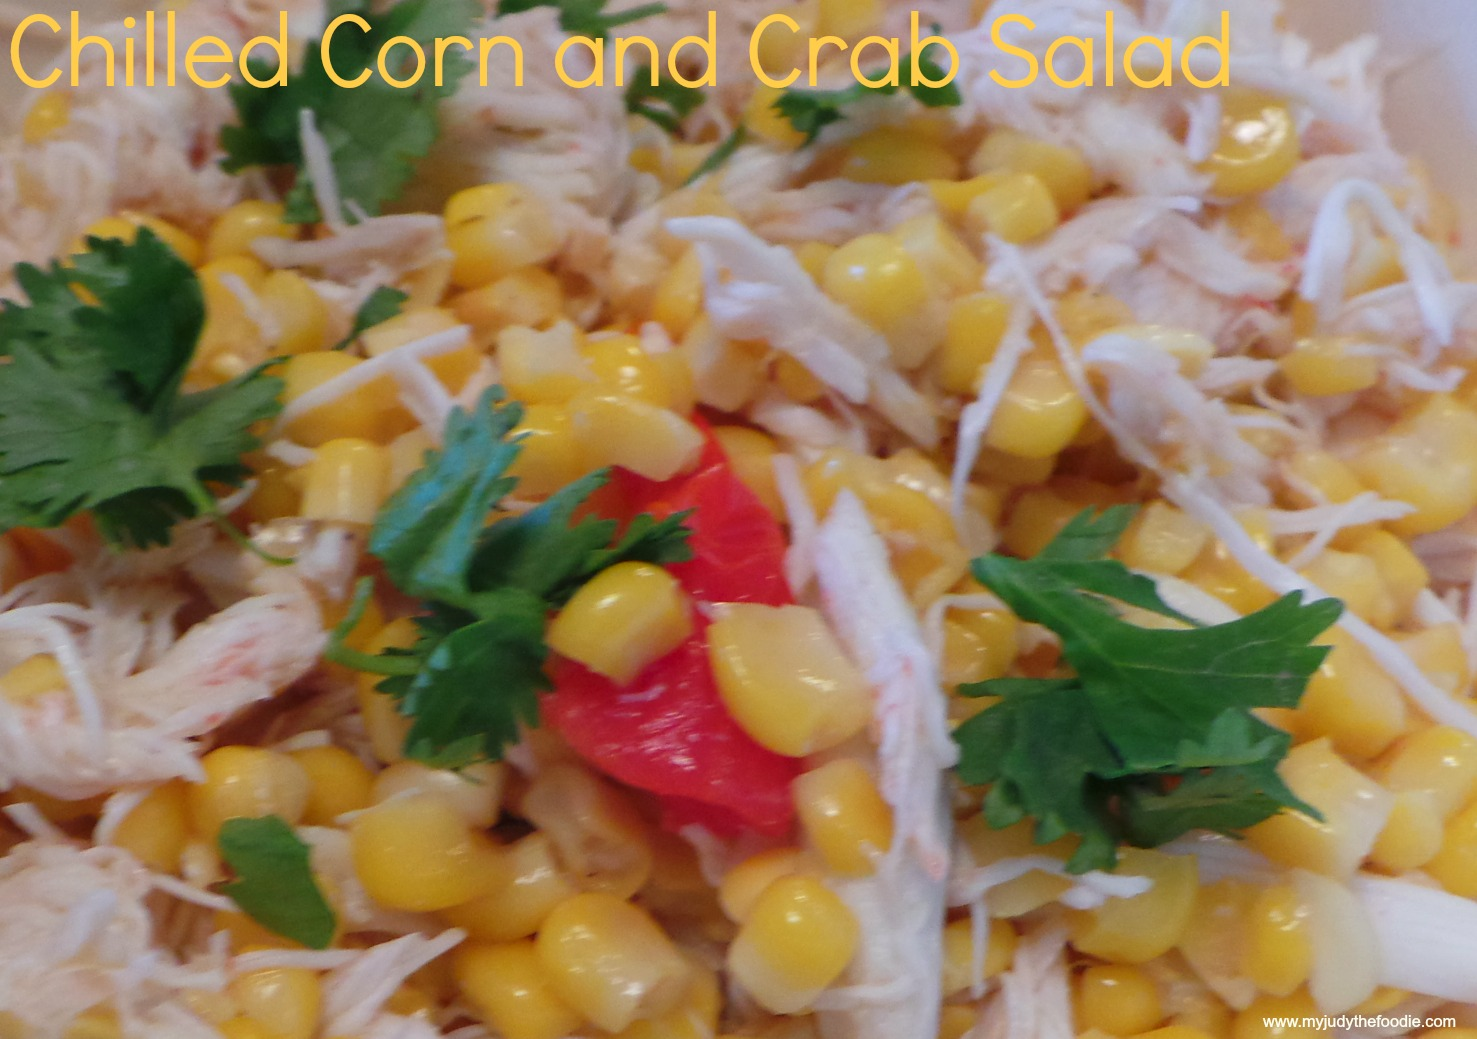 Corn and Crab Salad